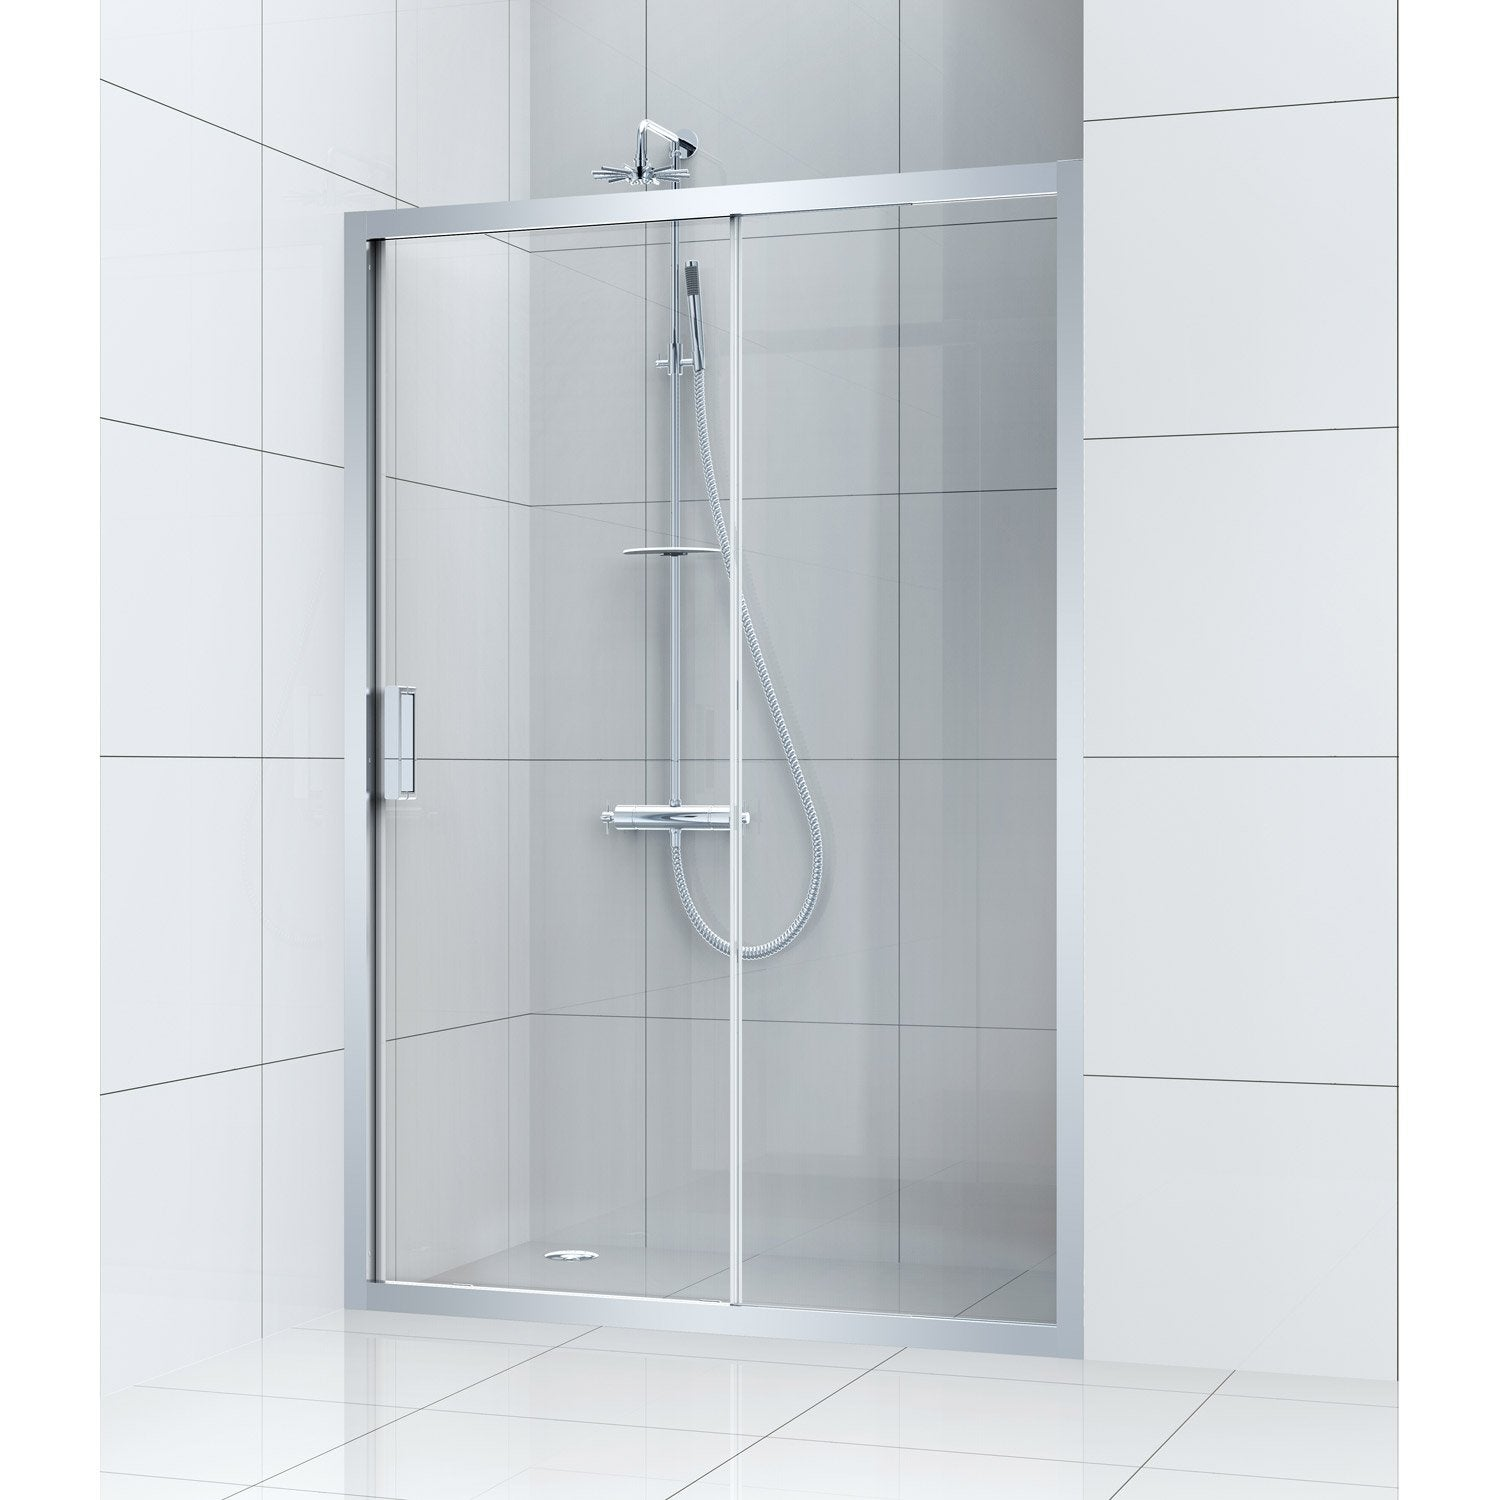 porte de douche coulissante 120 cm transparent charm leroy merlin. Black Bedroom Furniture Sets. Home Design Ideas